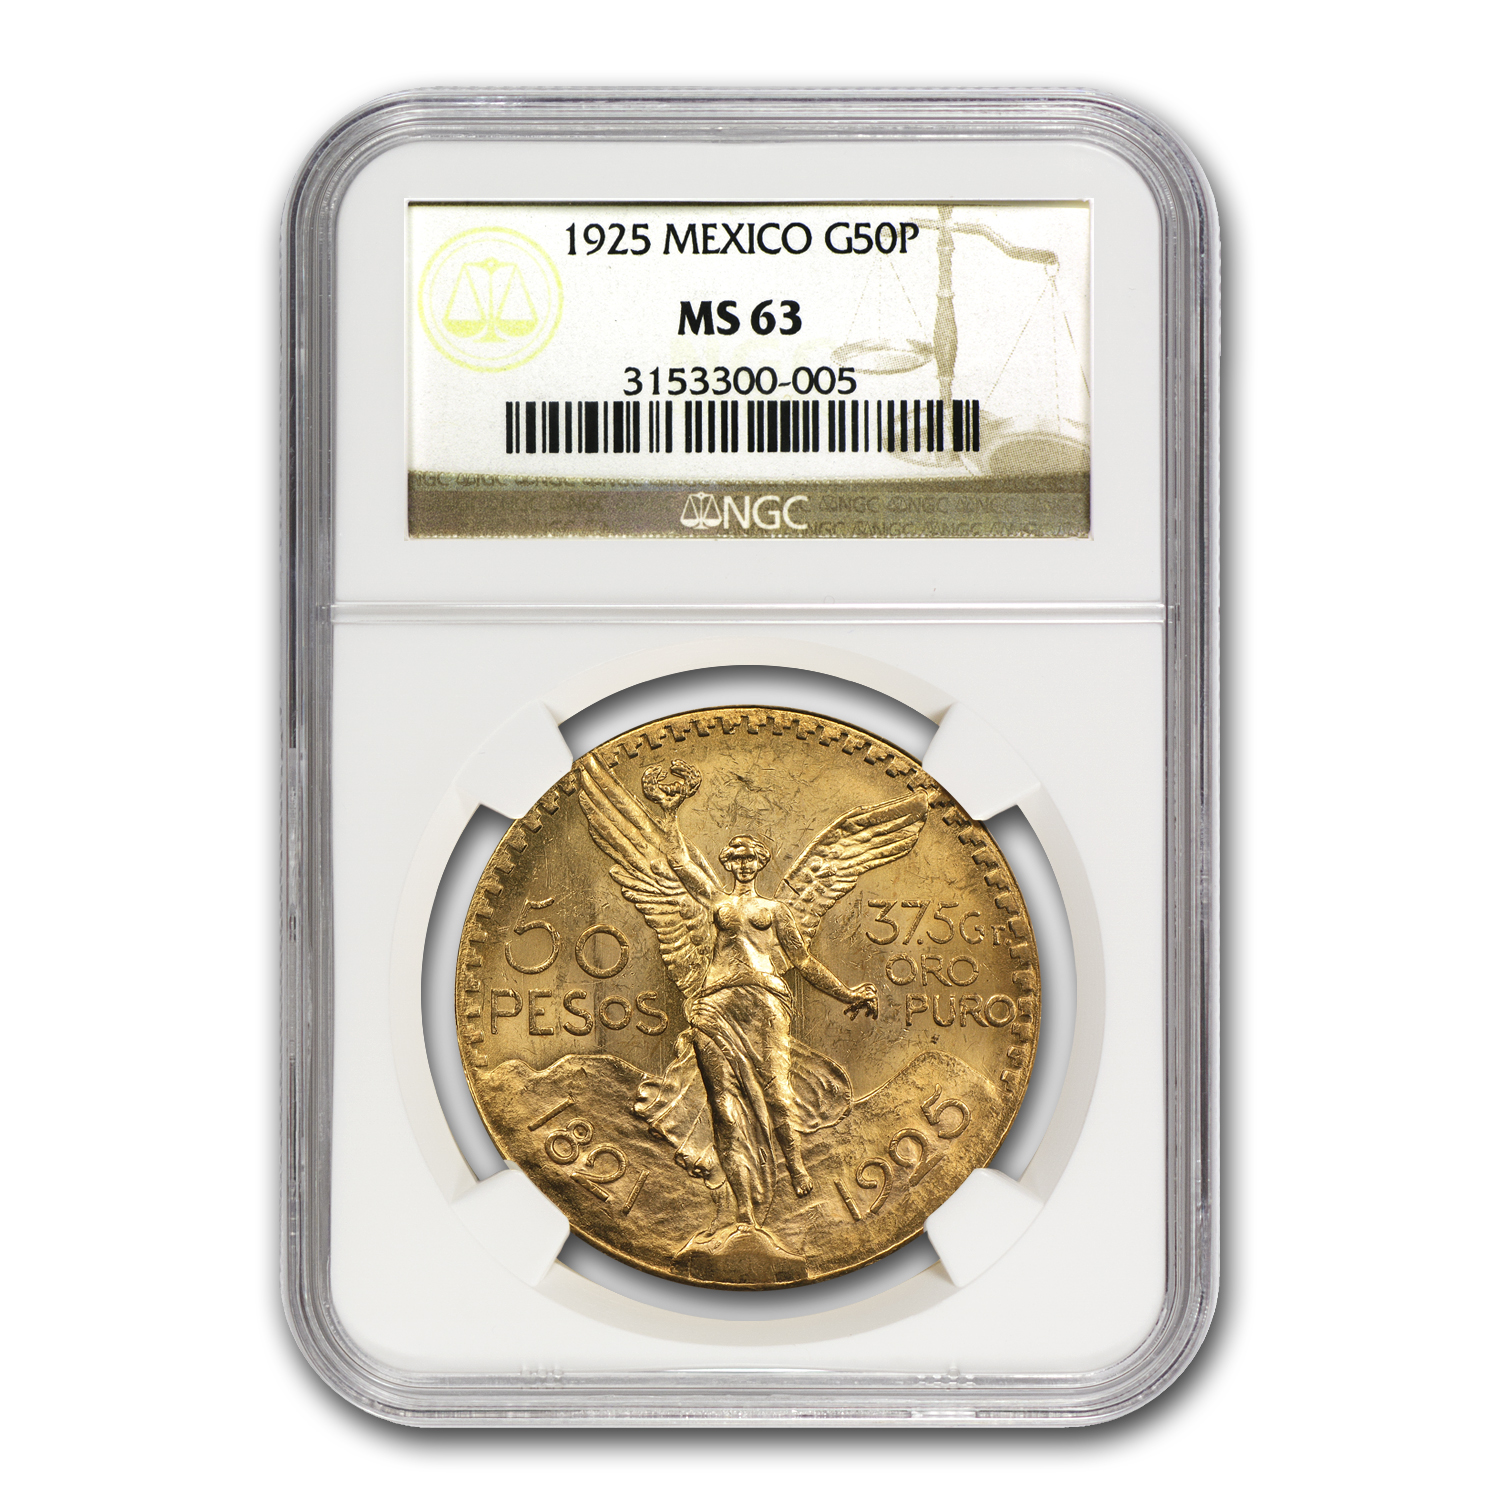 1925 Mexico Gold 50 Pesos MS-63 NGC